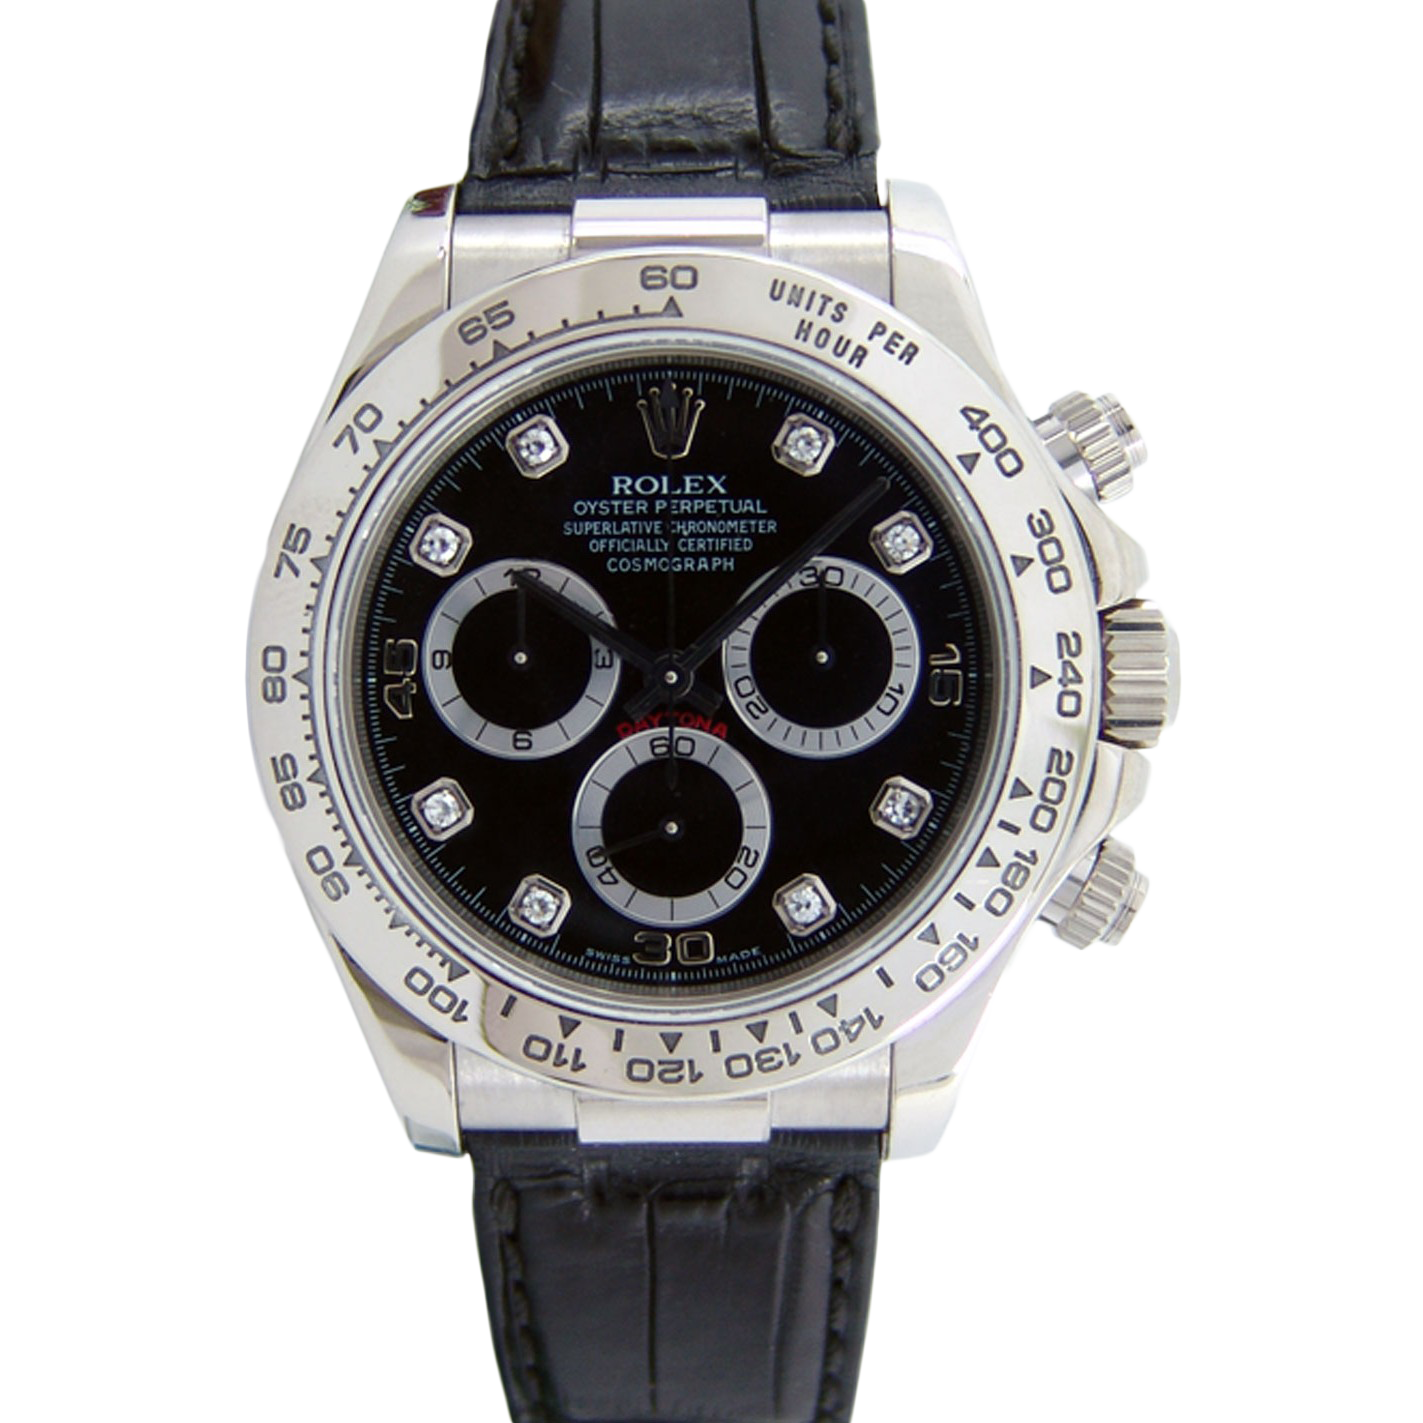 Rolex Cosmograph Daytona PNG Image